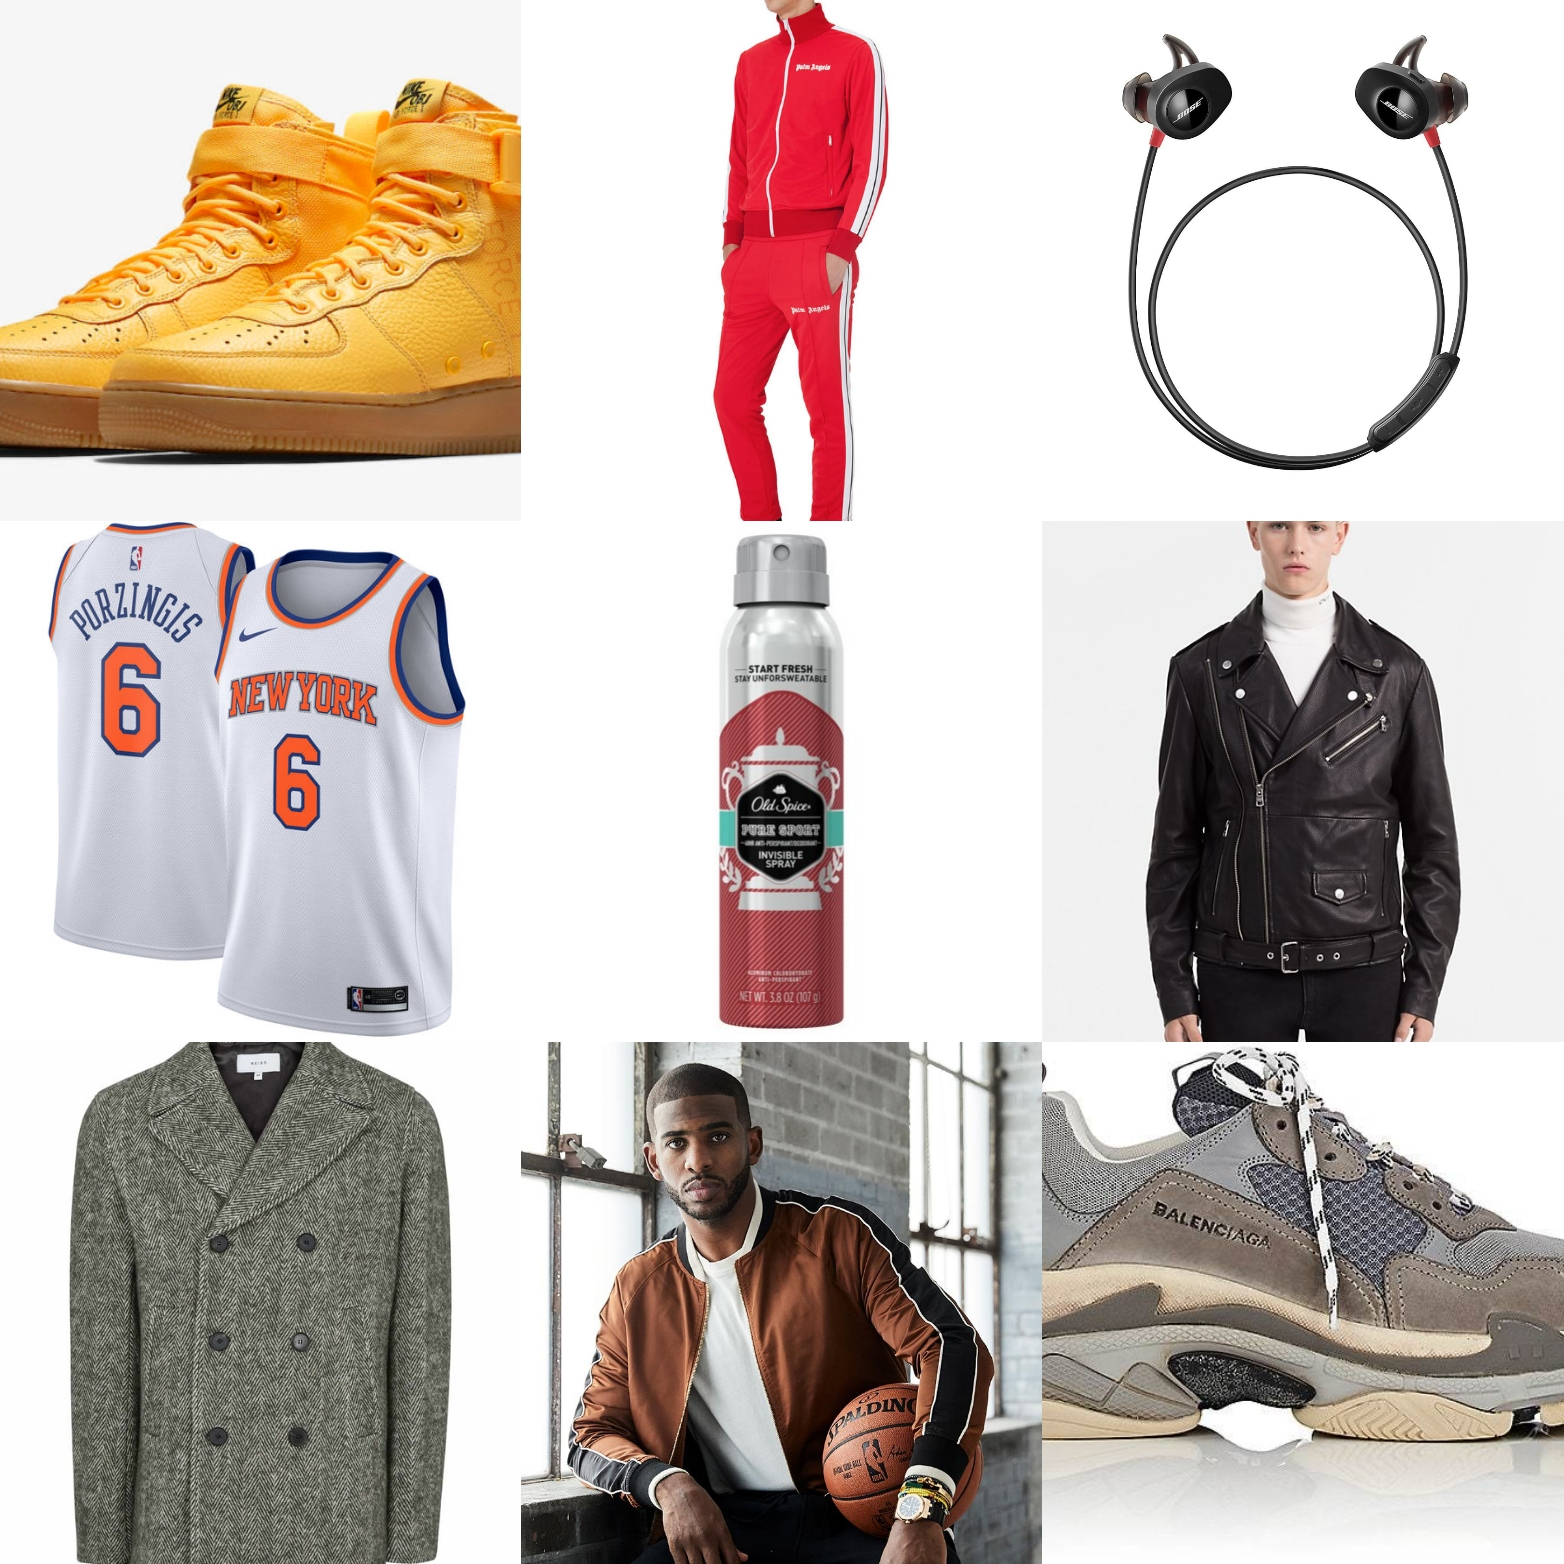 Men's Gift Guide: 17 Gifts For Men Who Love Sports & Fashion